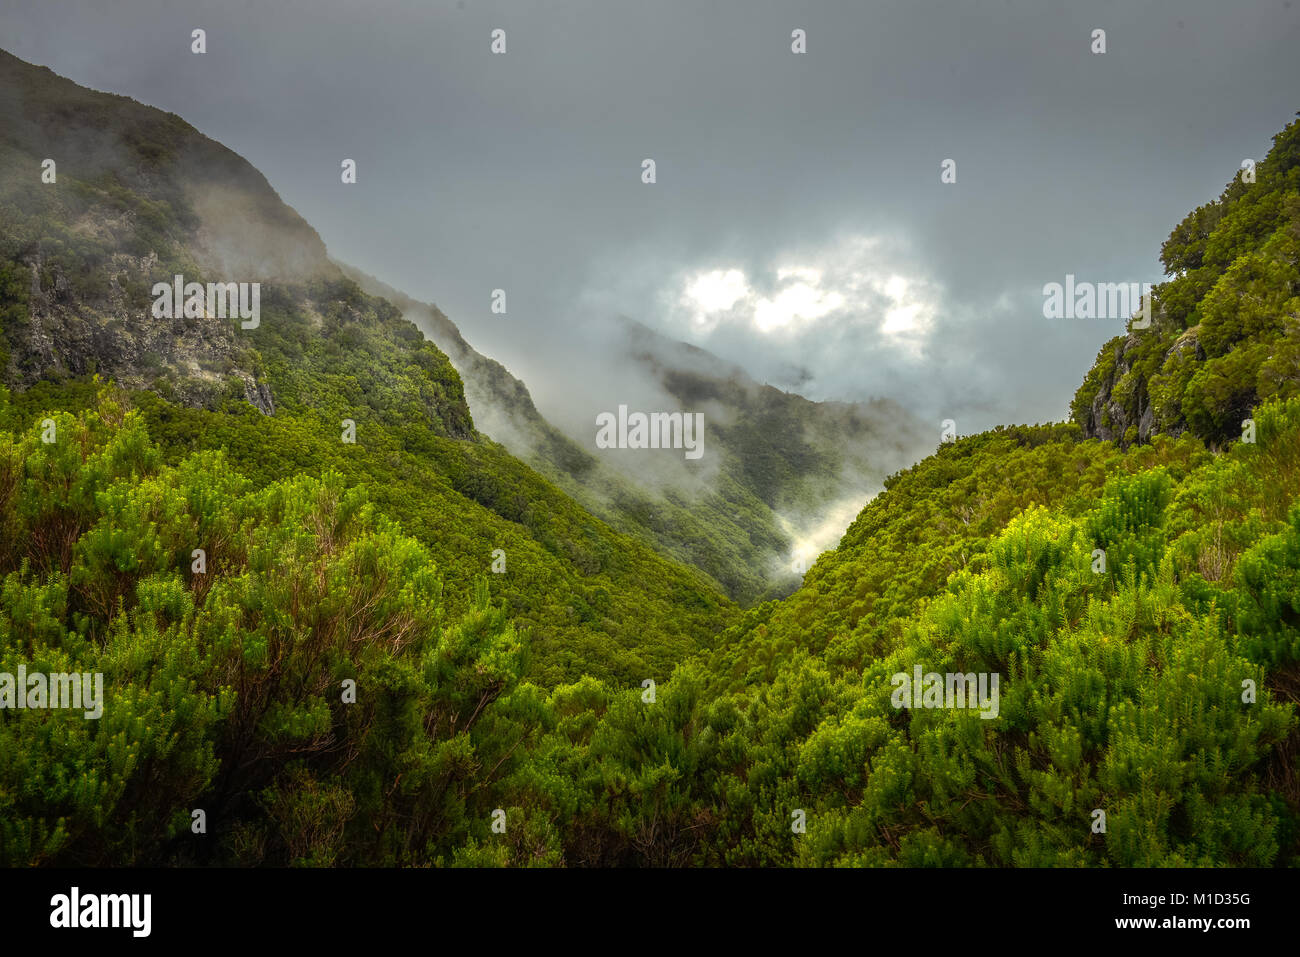 Rabacal-Tal, Central Mountains, Madeira, Portugal, Zentralgebirge - Stock Image